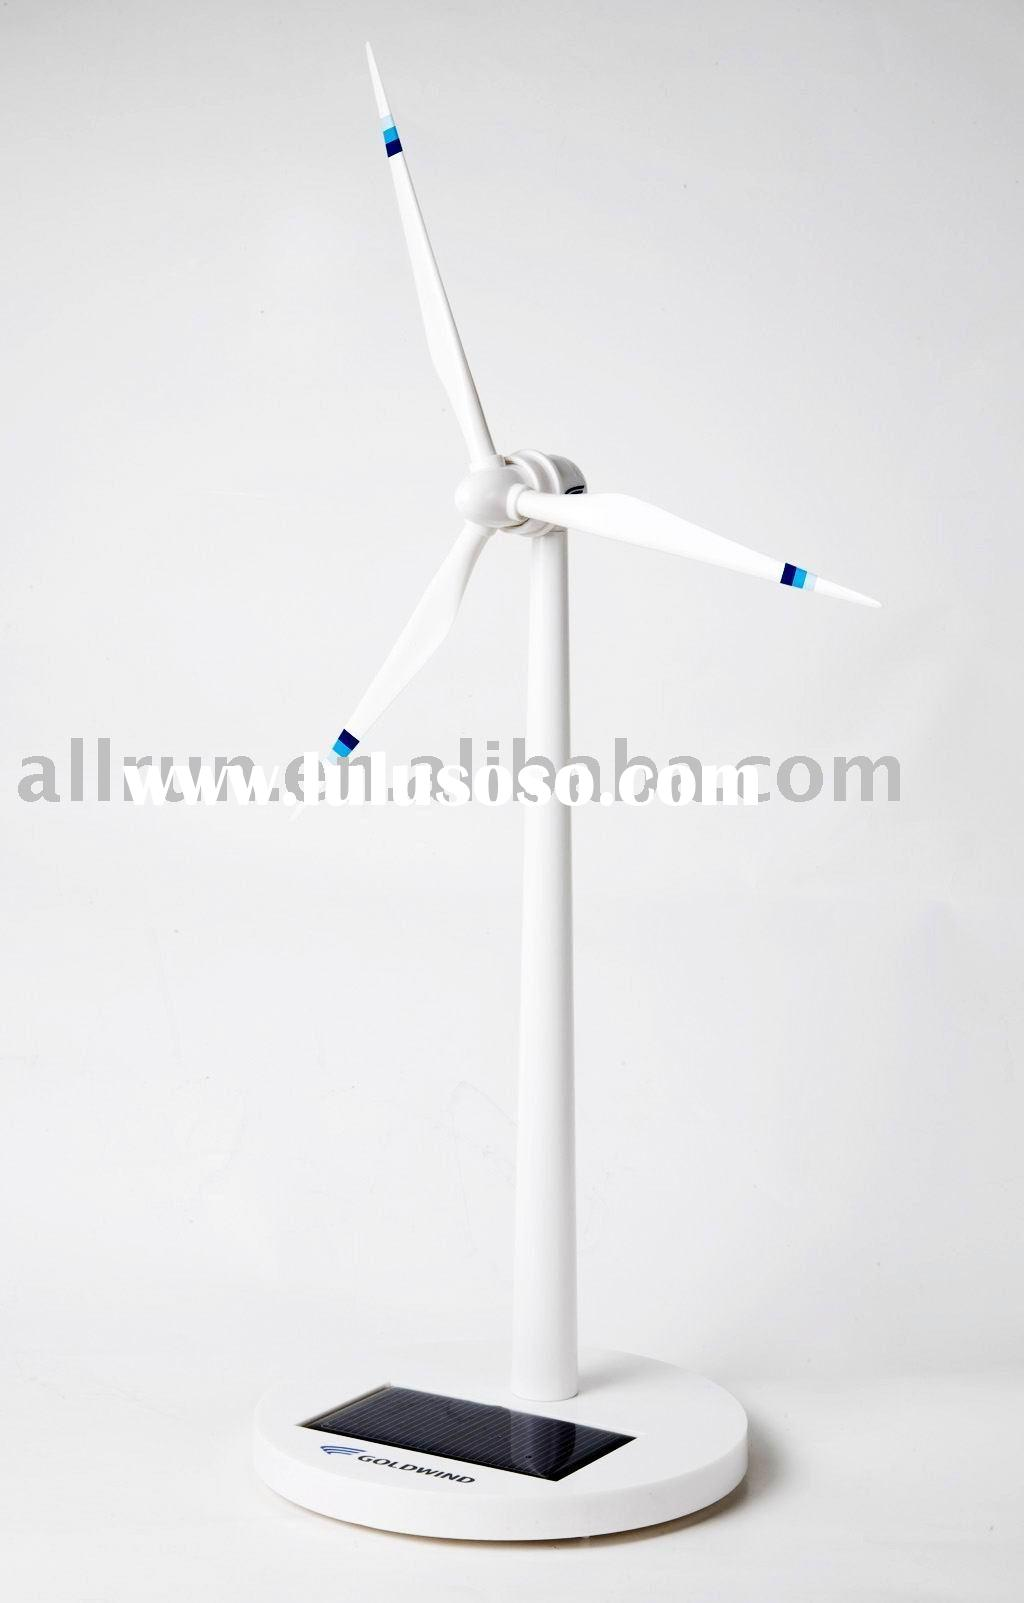 ABS MATERIAL solar garden windmill with three blades